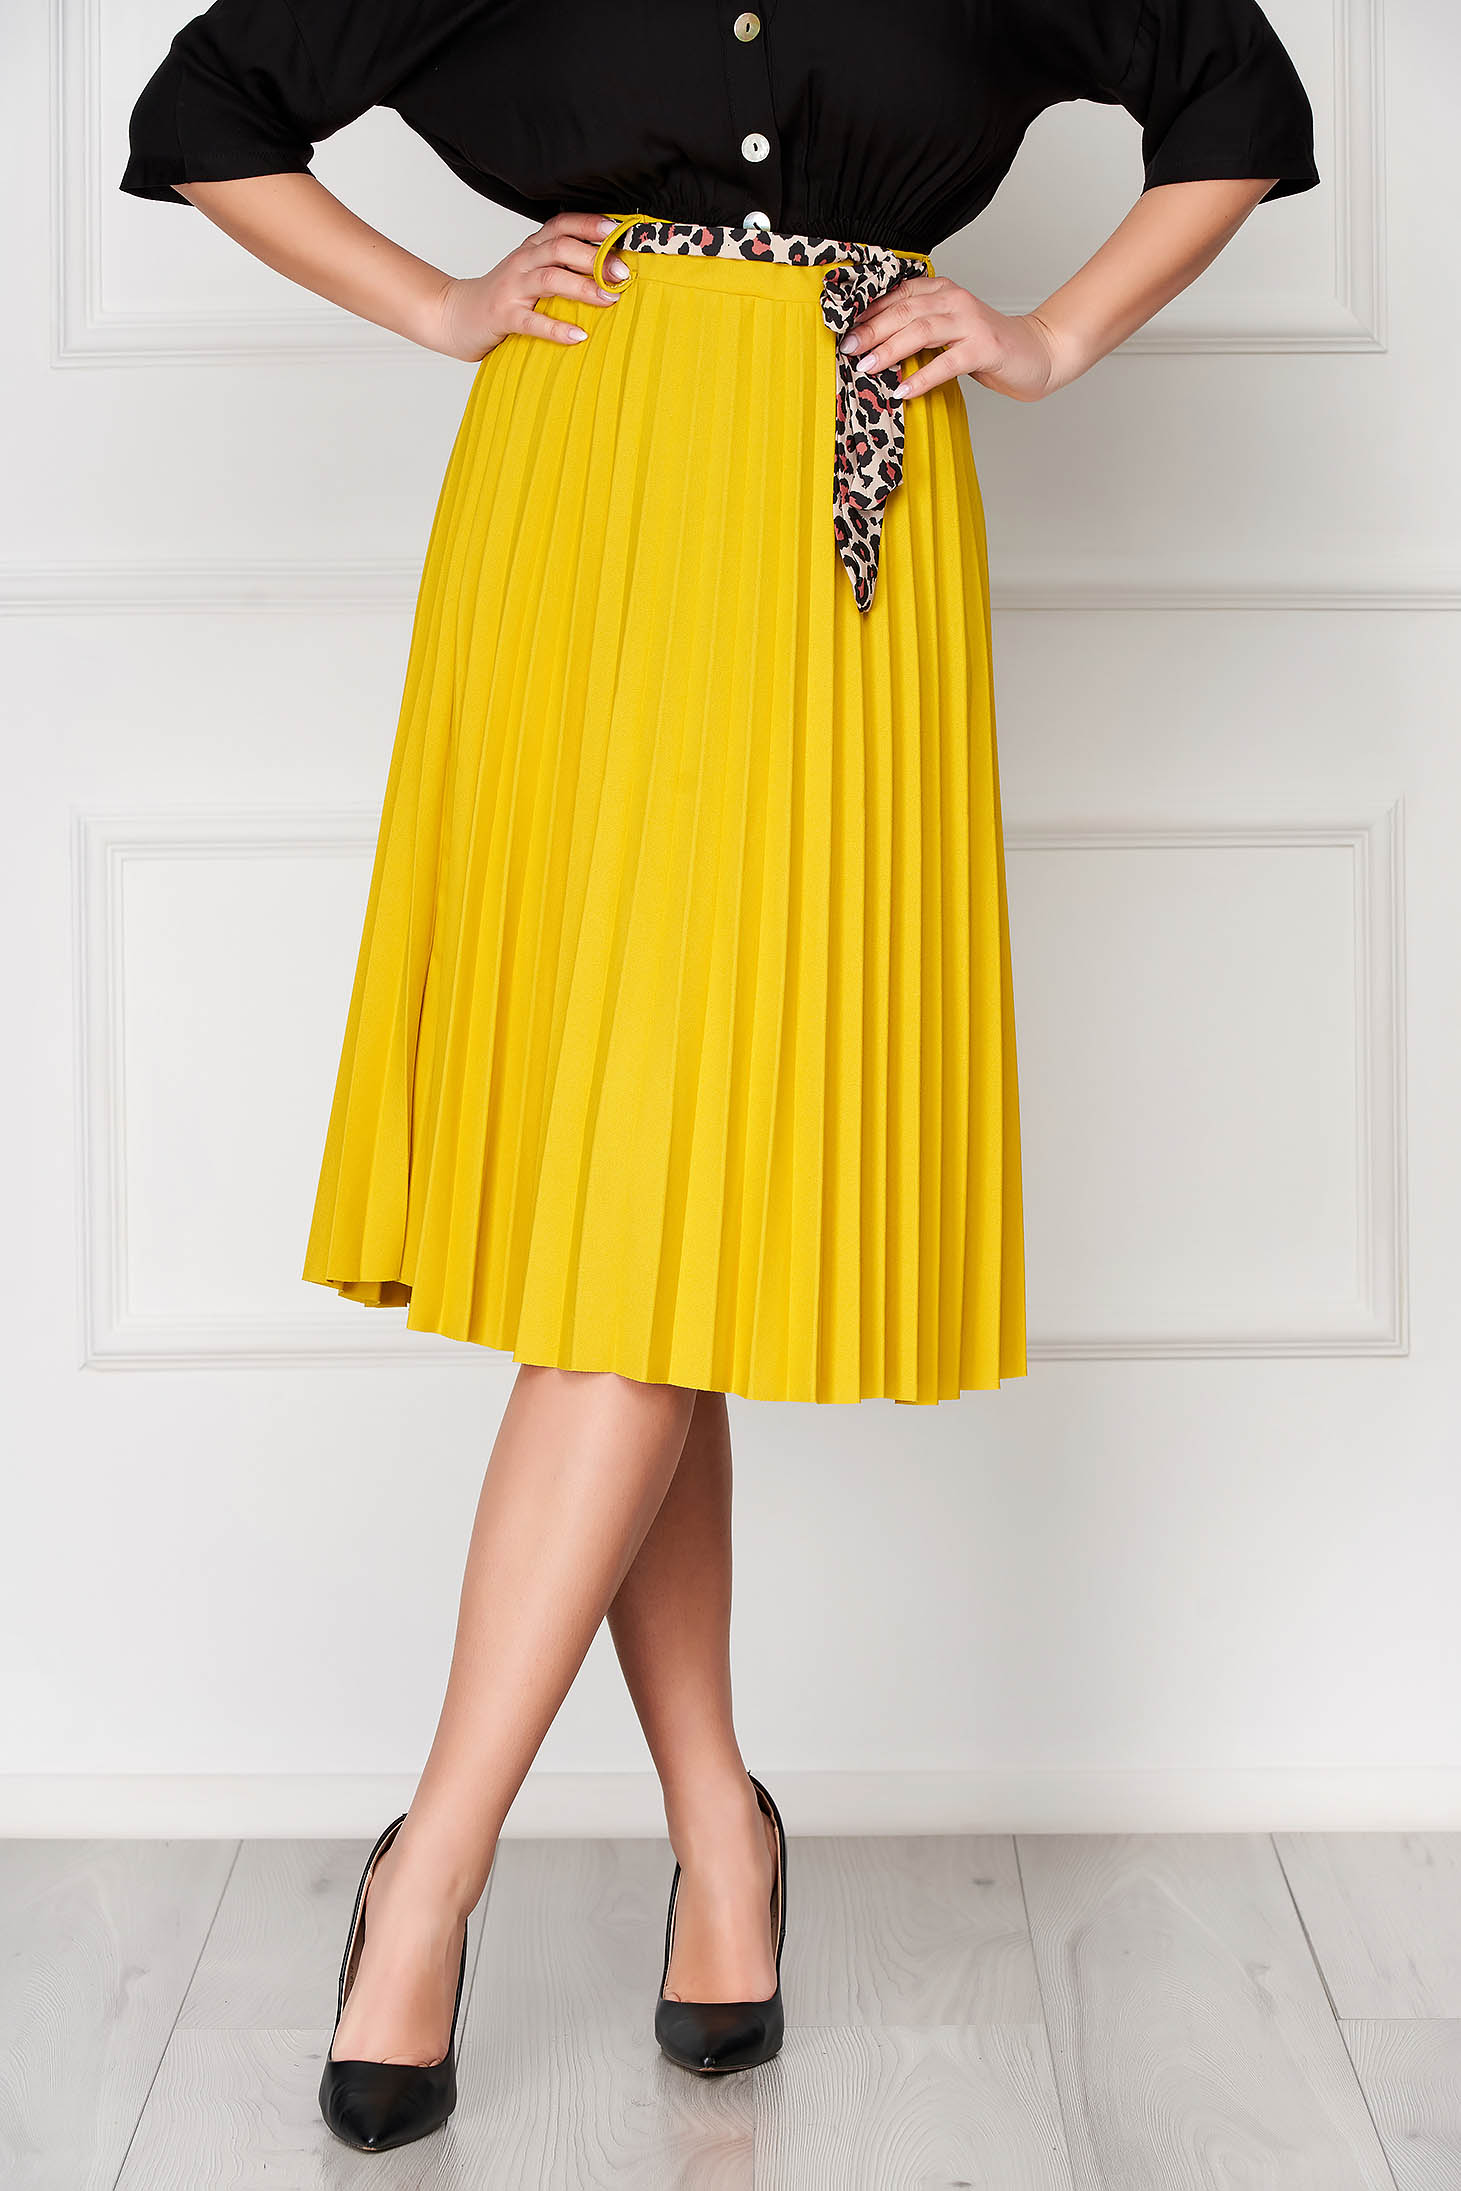 Yellow casual midi cloche skirt accessorized with belt pleats of material